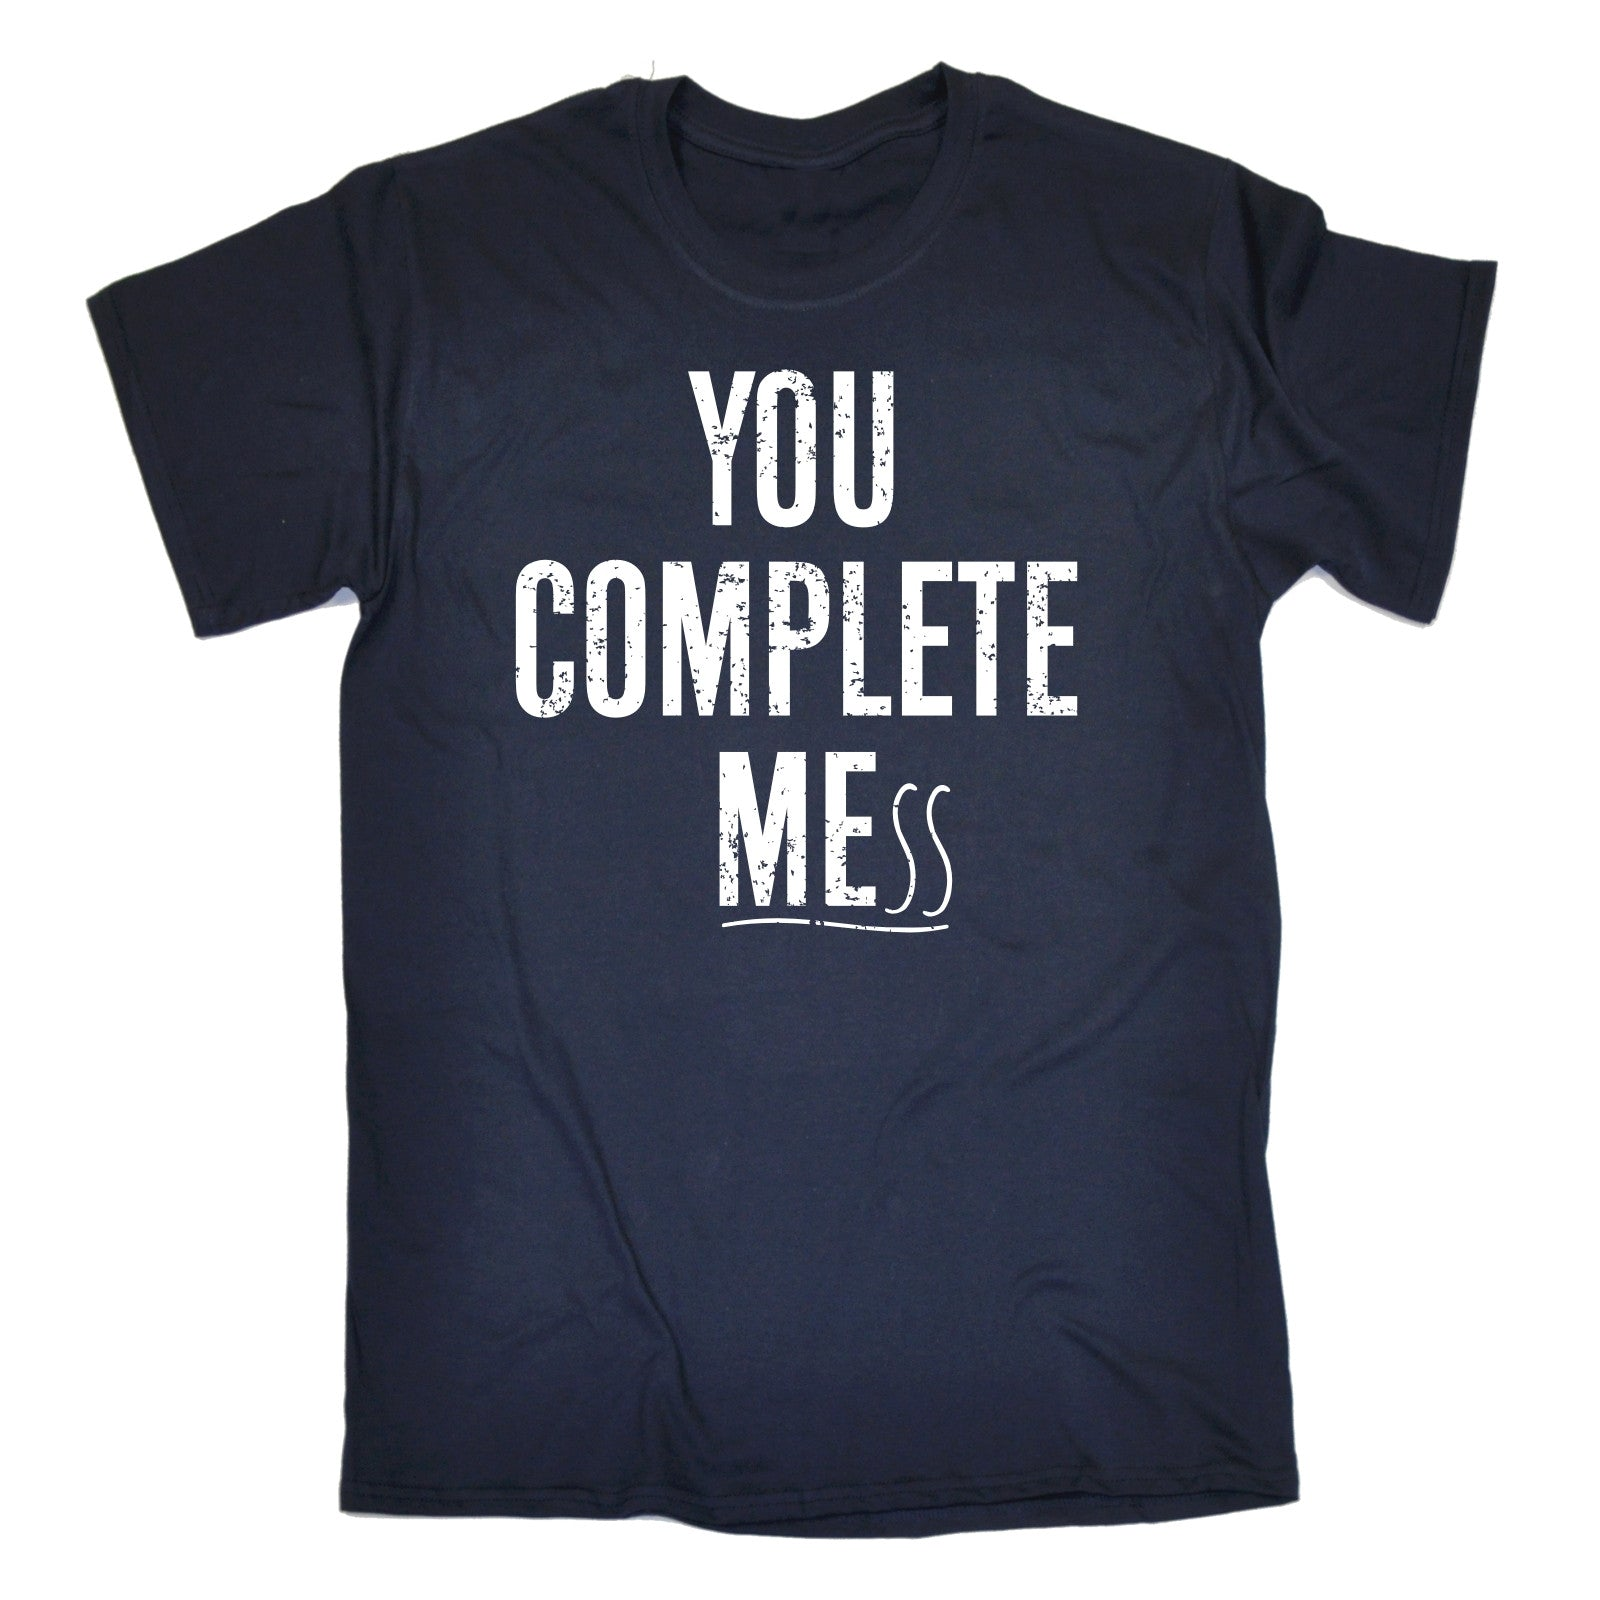 You Complete Me Mess T-SHIRT Humor Girlfriend Boyfriend